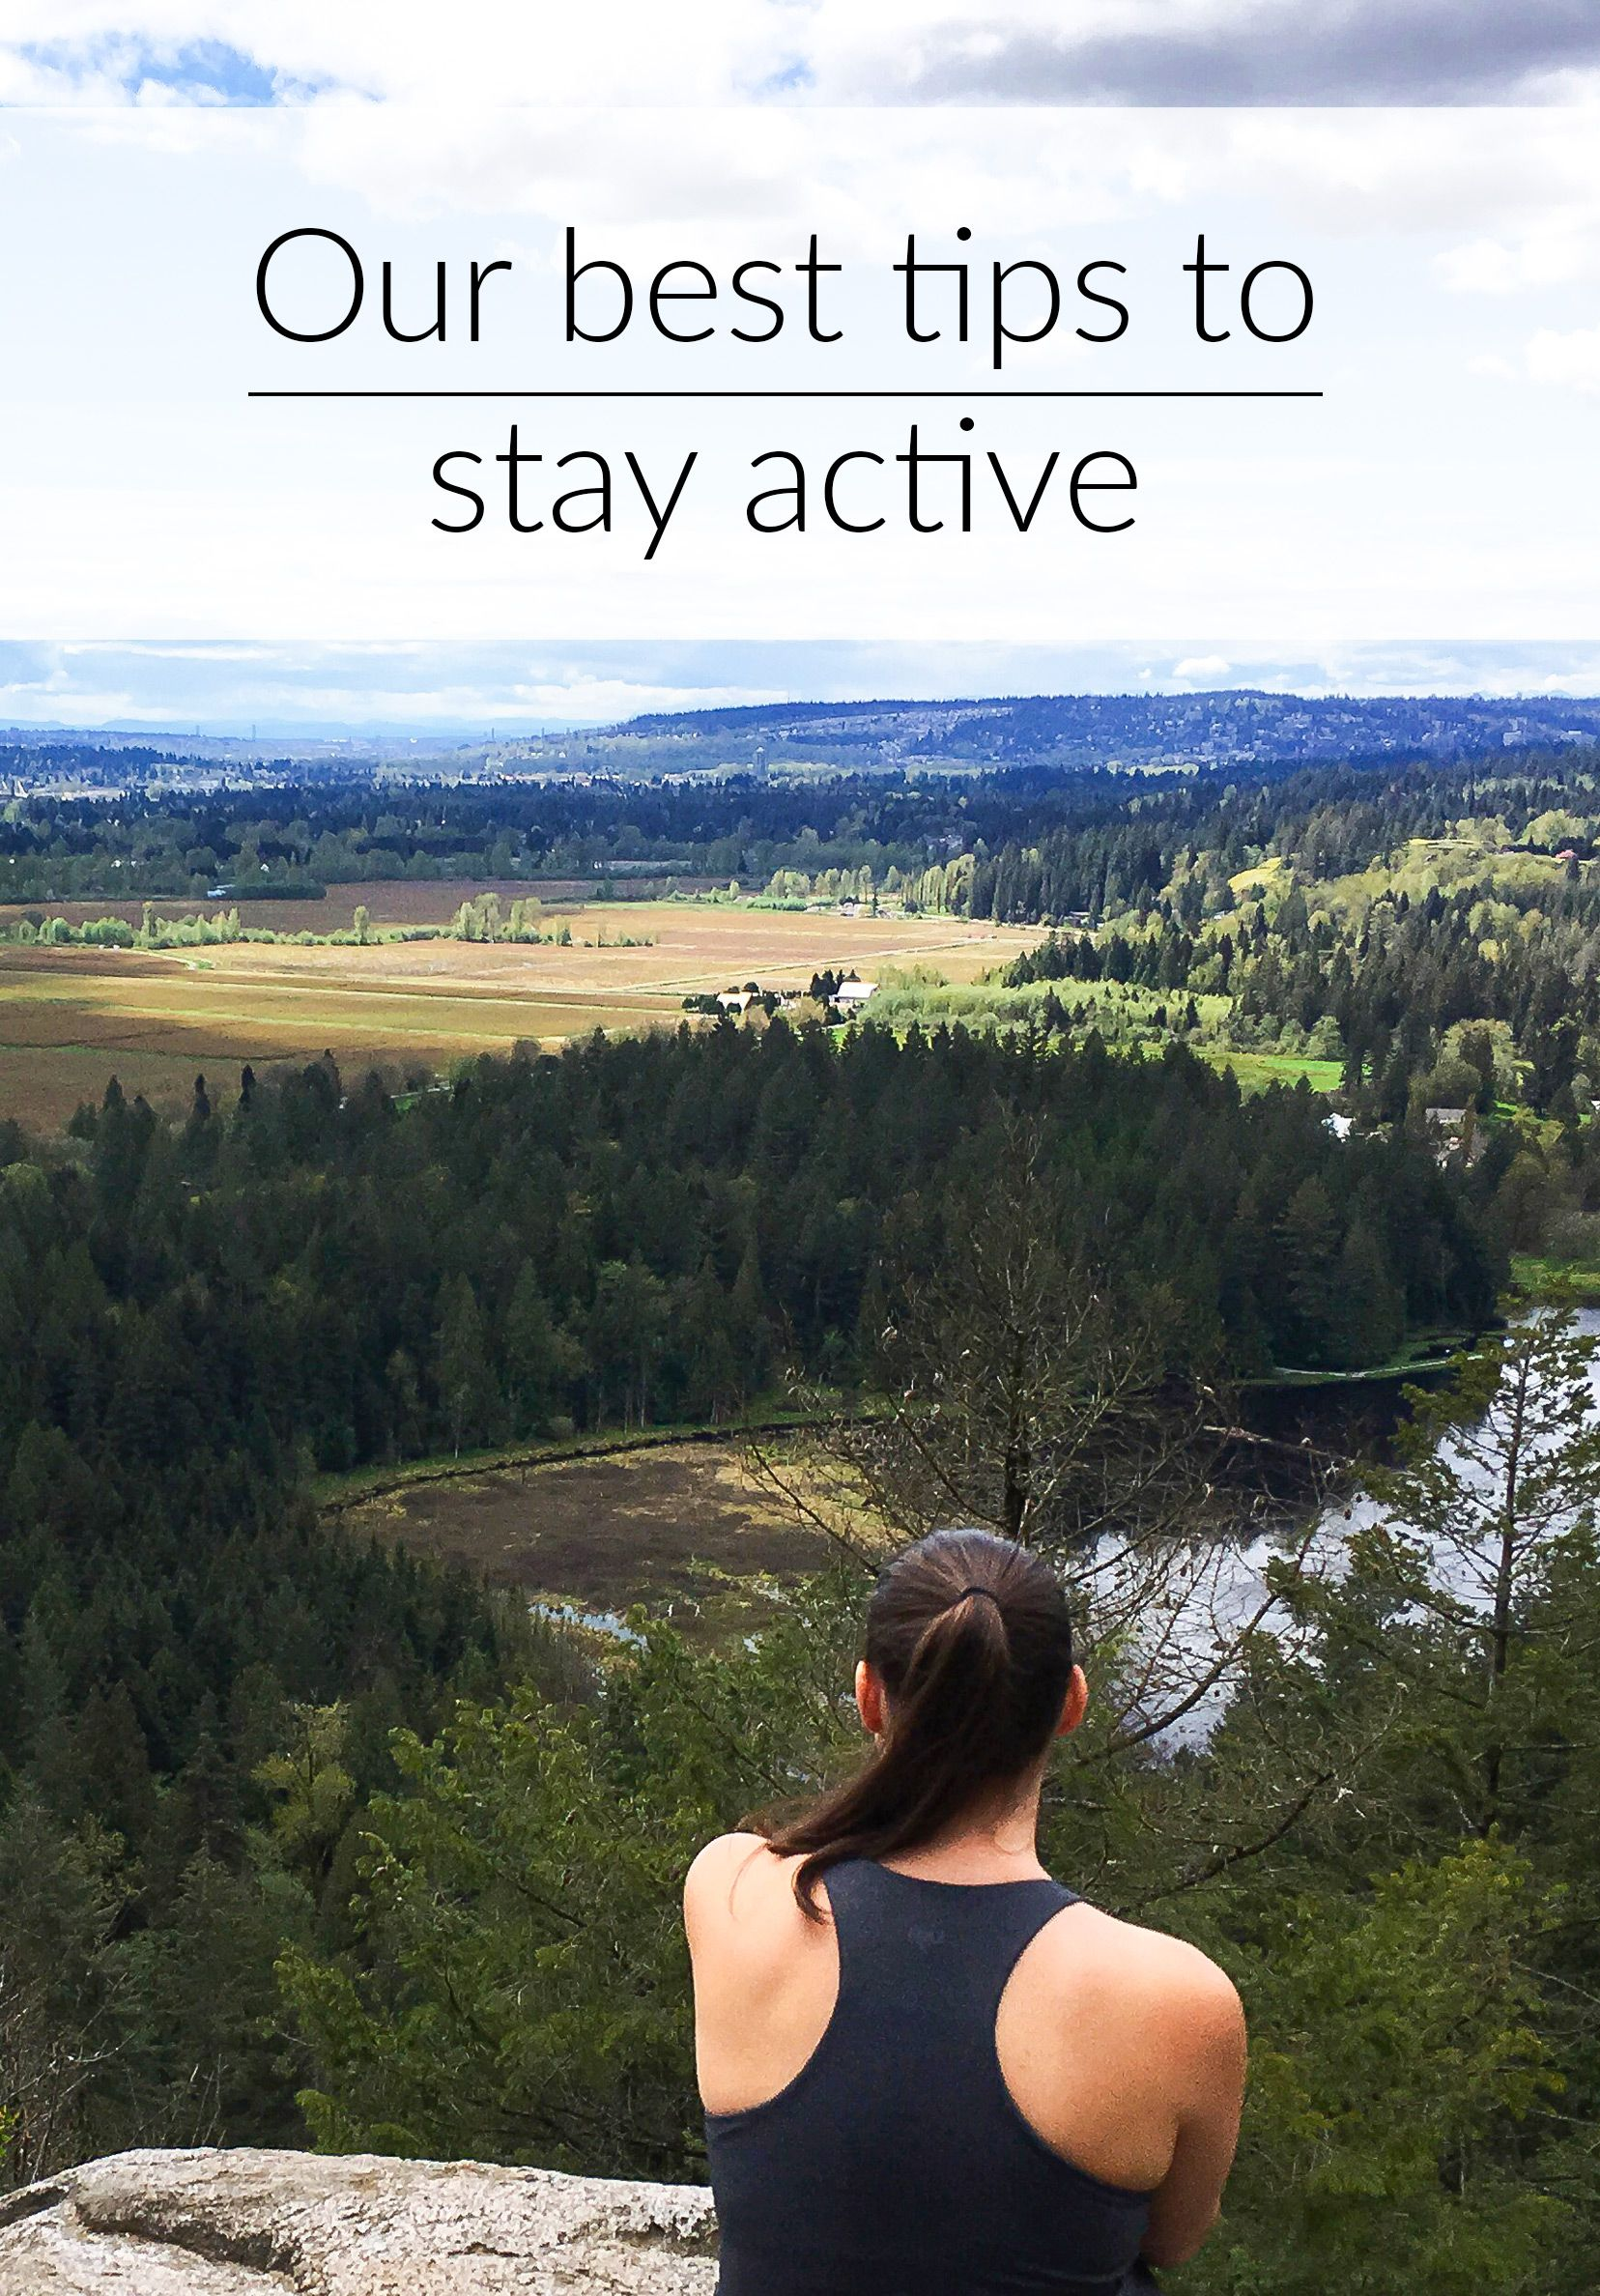 Our 4 best tips to stay active and enjoy it! | Sparks and Bloom #active #thin #workout #stayingactive #hike #hiking #explore #lifestyle #streetstyle #diy #lifesmoment #moment #happy #life #explore  #Quebec #Vancouver #Sparksandbloom